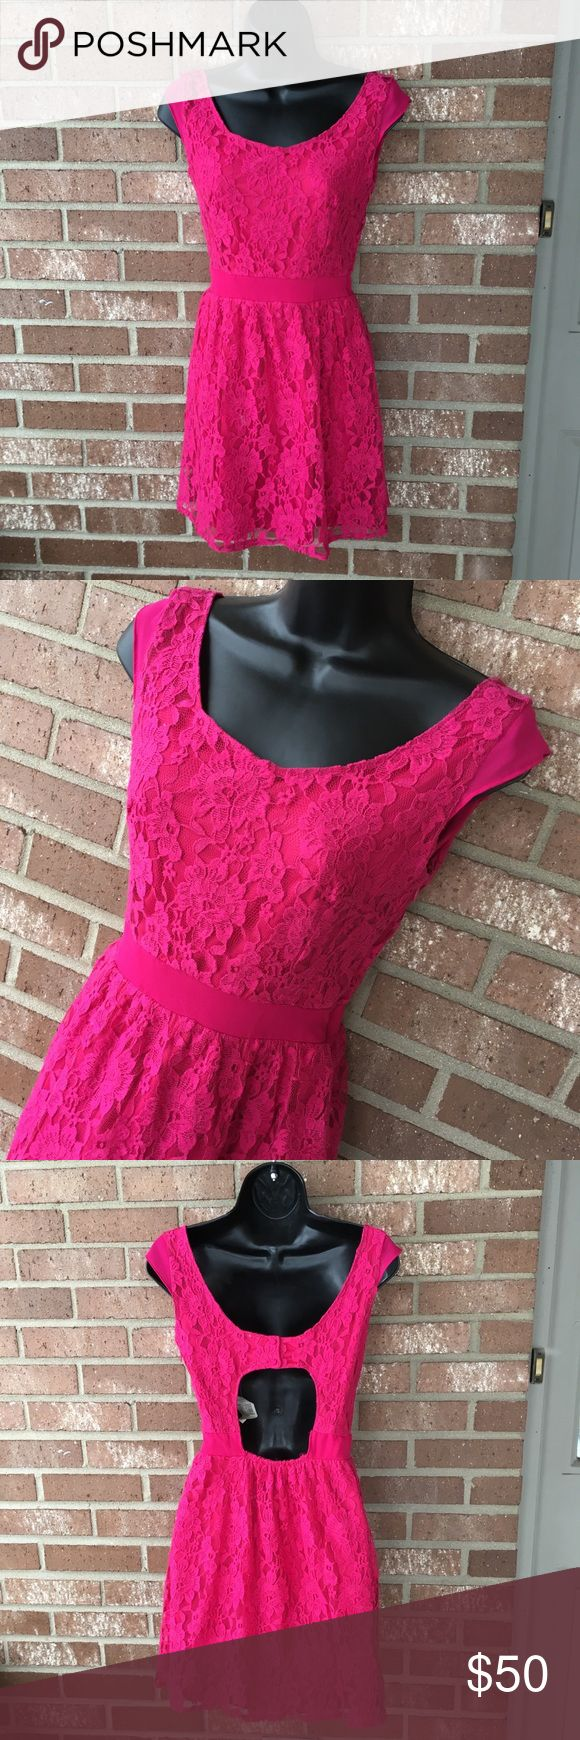 Adorable NWT American Eagle pink lace dress size 0 Adorable American Eagle pink lace dress! Cute shade of pink! Perfect for Valentine's Day! New with tag! Size 0 Has cutout in the back! Seriously love this dress! Sadly I'd purchased online and it doesn't fit me! Never worn and is in new condition, though has a few white/black treads seen in/visible. IMO not noticeable from far away, only up close! American Eagle Outfitters Dresses Mini